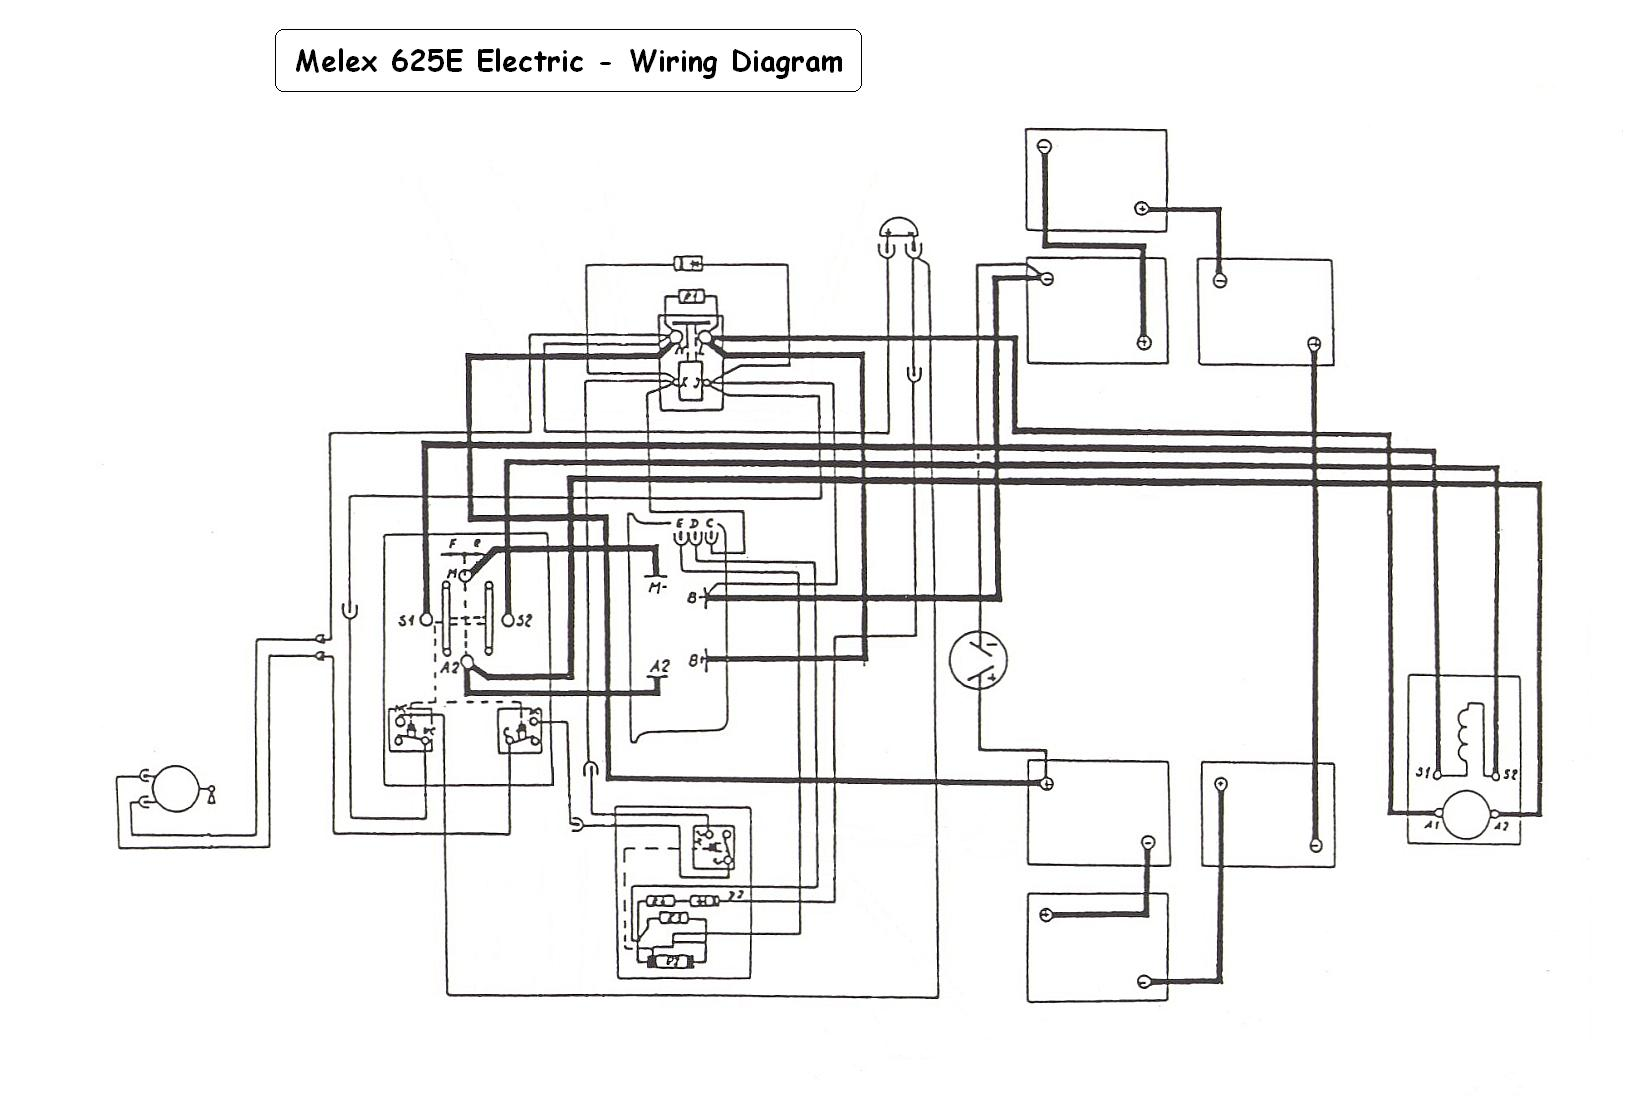 hight resolution of melex wiring diagram 112 and 212 32 wiring diagram melex golf cart wiring diagram 202 melex